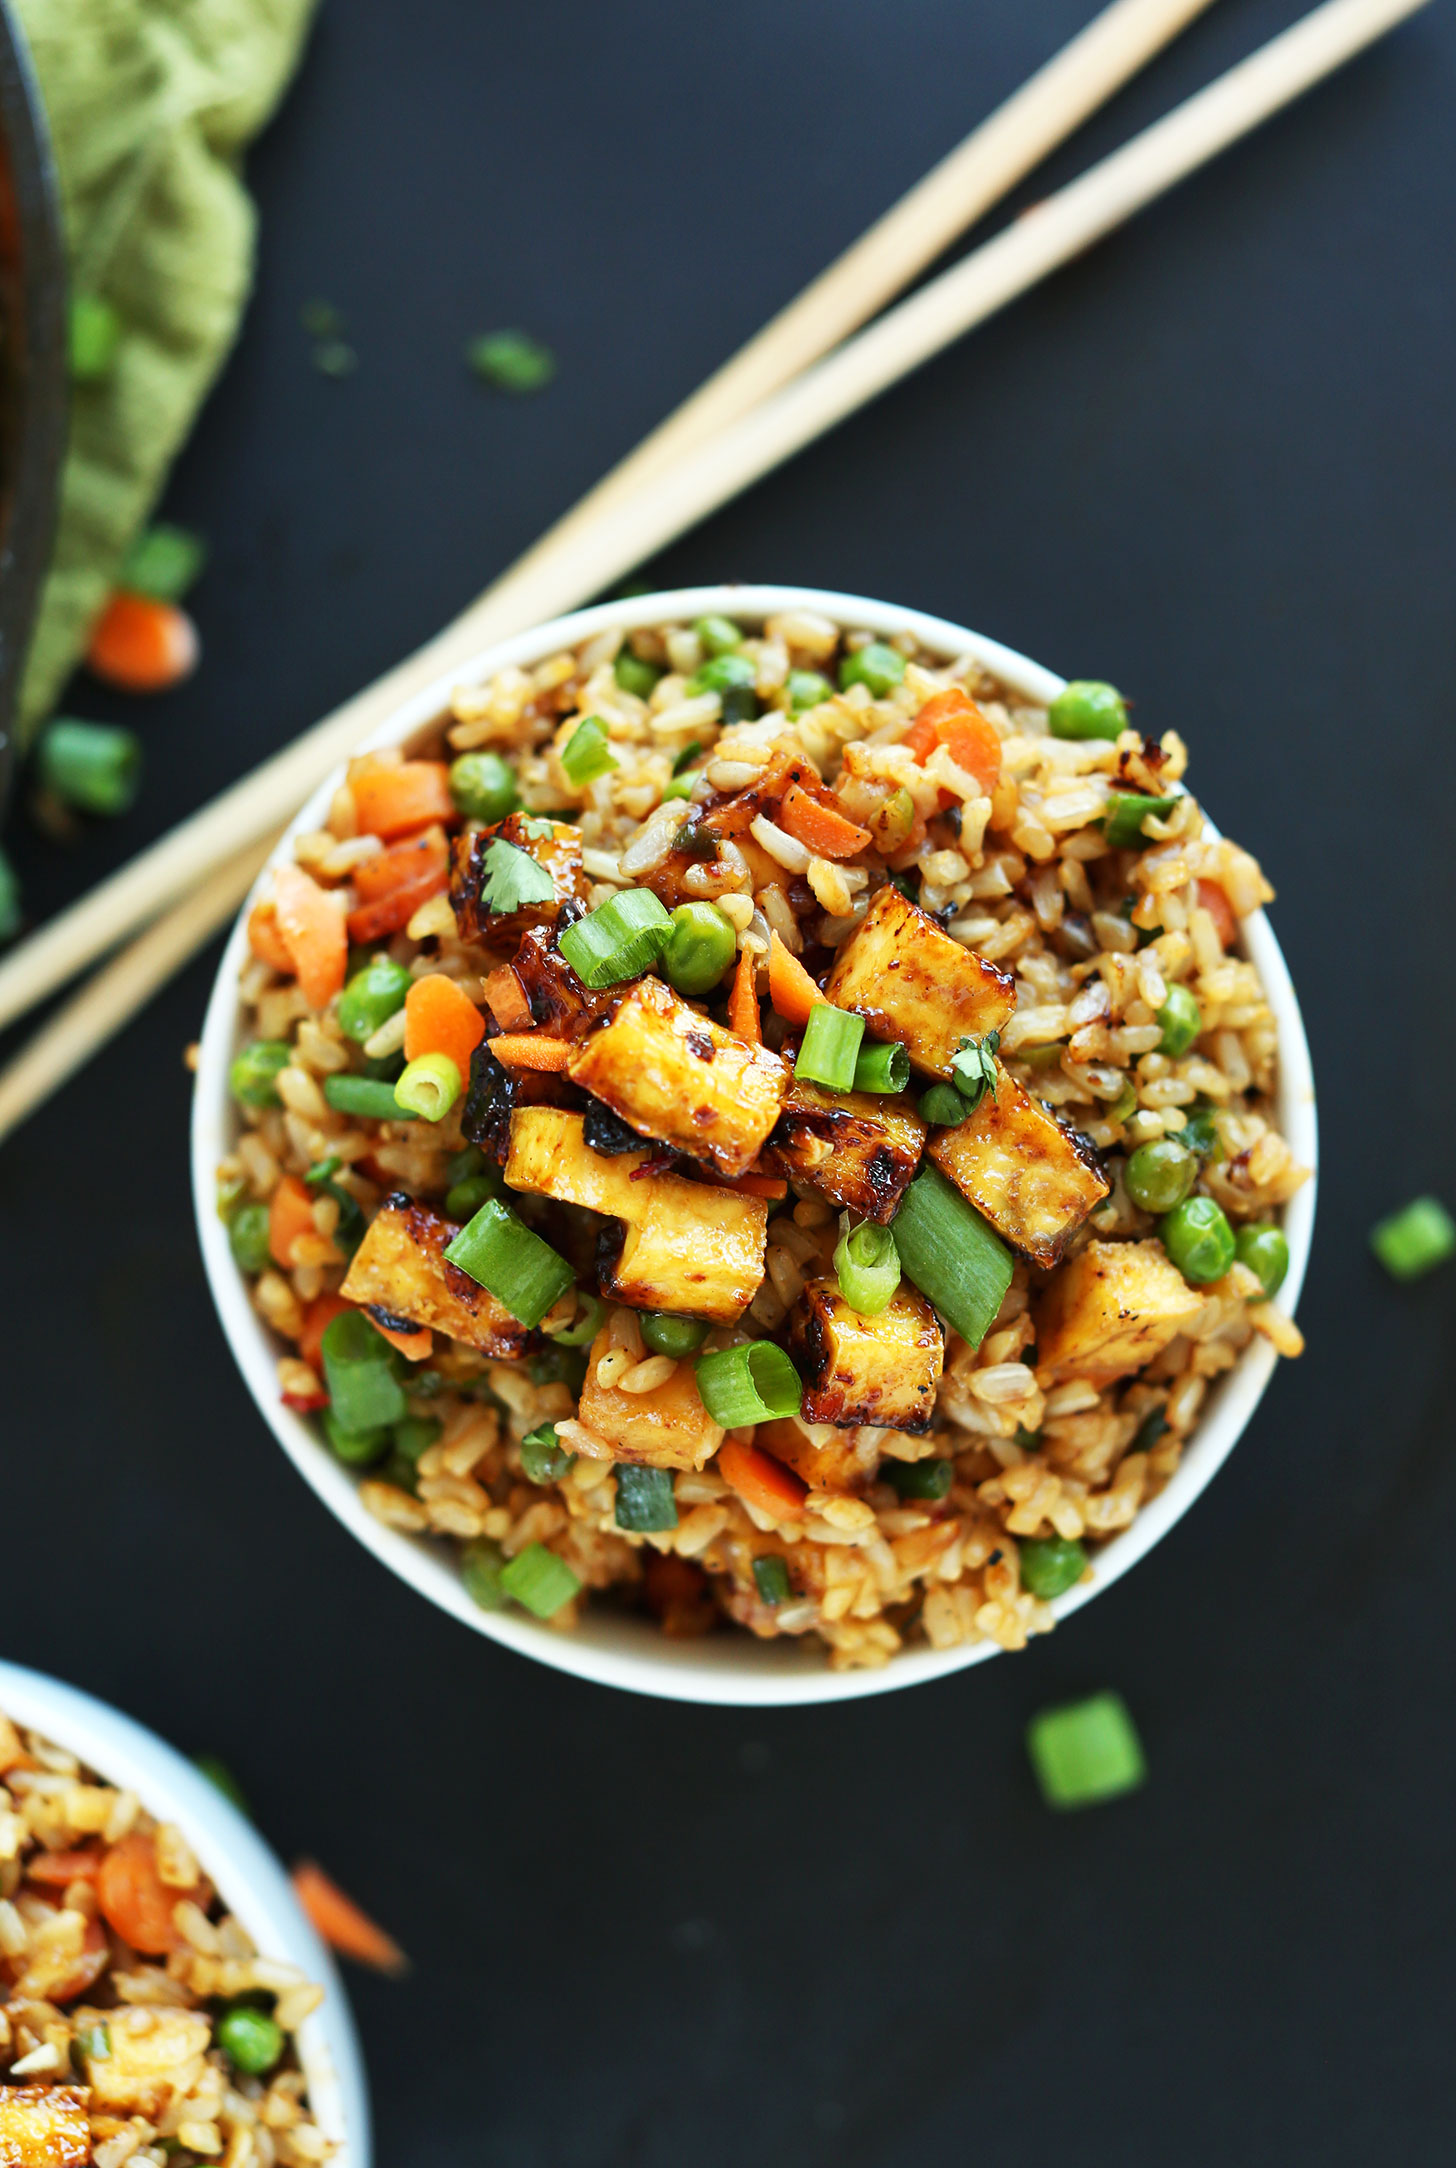 Close Up Shot Of A Bowl Our Gluten Free Vegan Fried Rice With Crispy